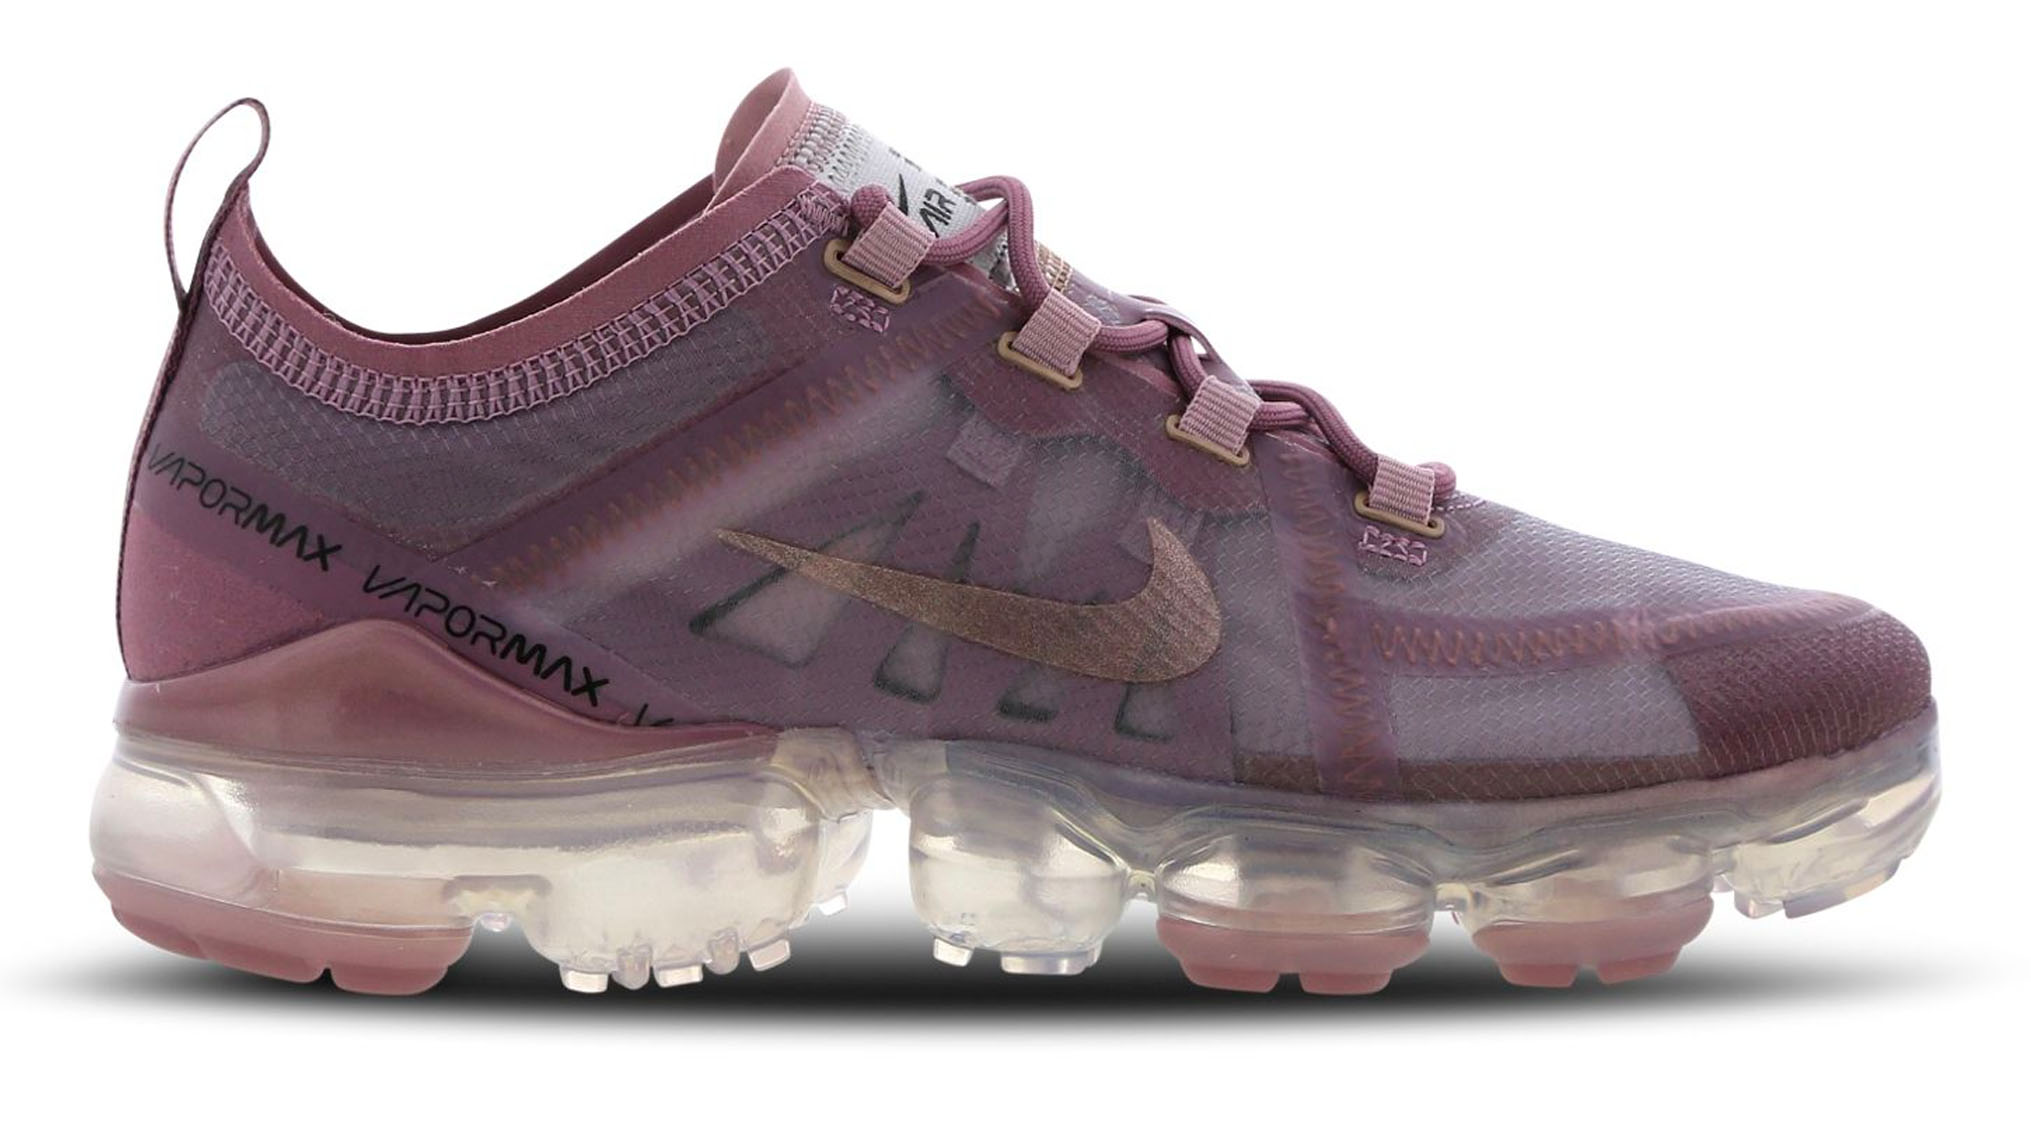 feca36d4e7 Nike's Air Vapormax 2019 Has Just Arrived In 'Plum Chalk' | Closer ...